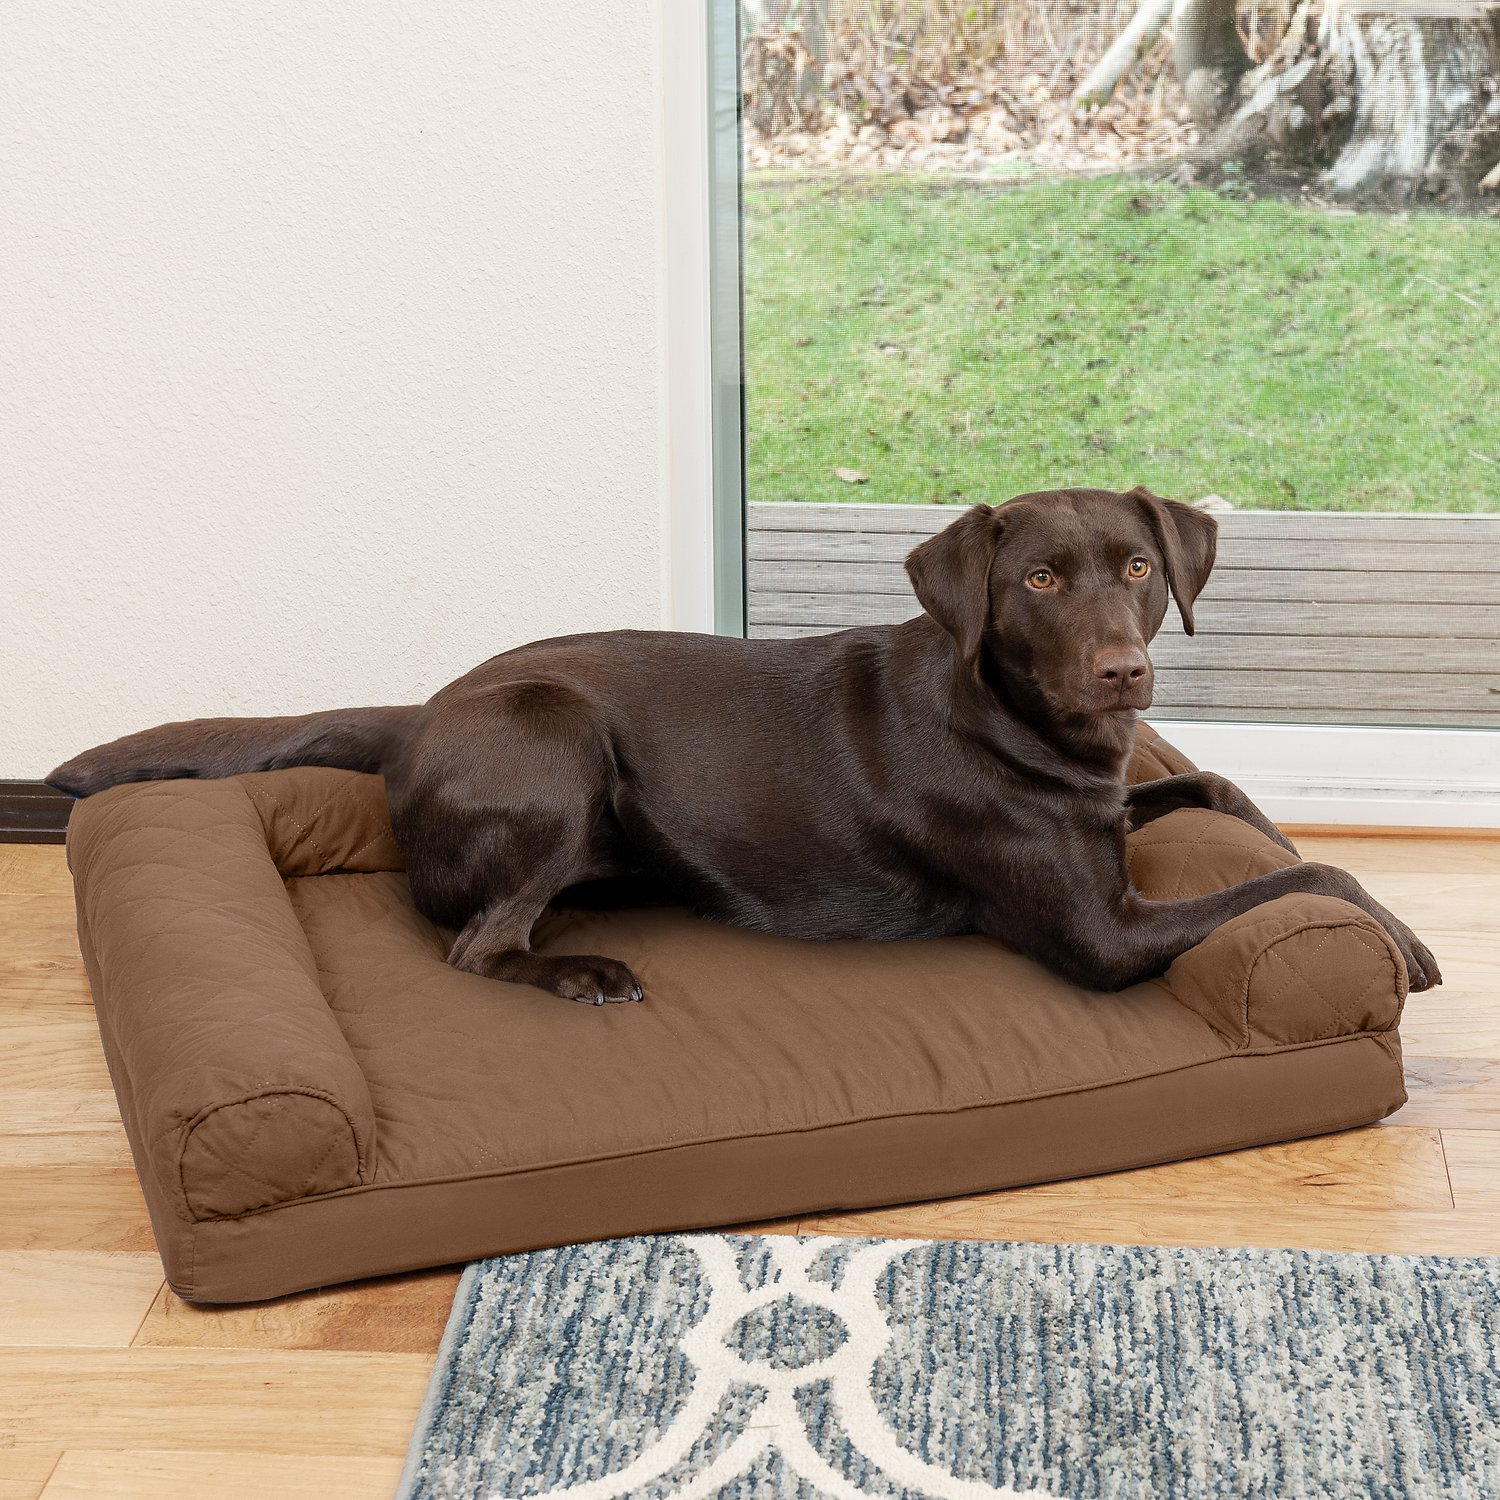 FurHaven Quilted Orthopedic Sofa Dog & Cat Bed